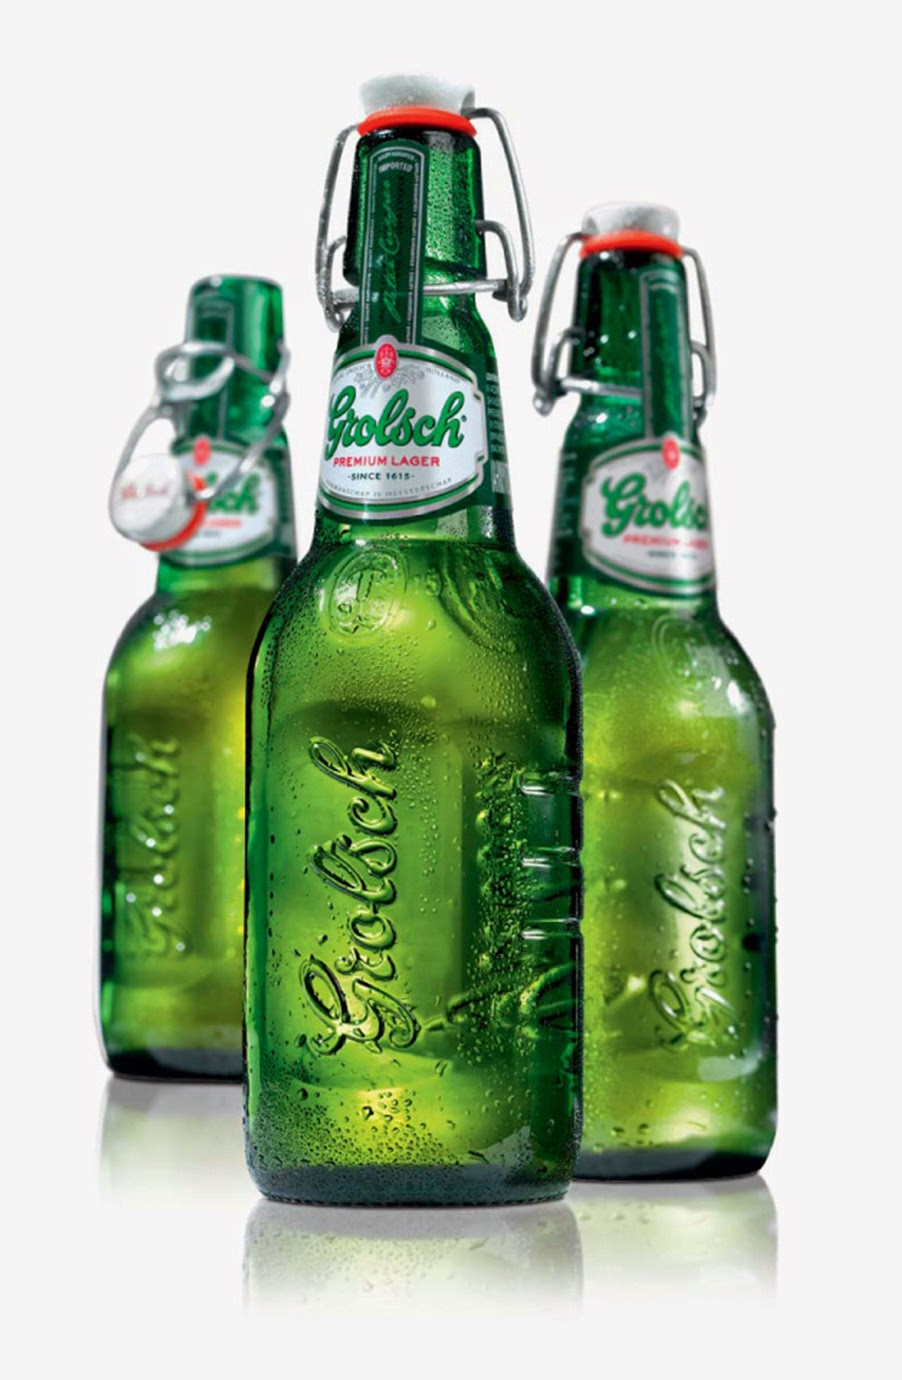 p 39 tit brass 39 ain une bi re la grolsch premium lager. Black Bedroom Furniture Sets. Home Design Ideas